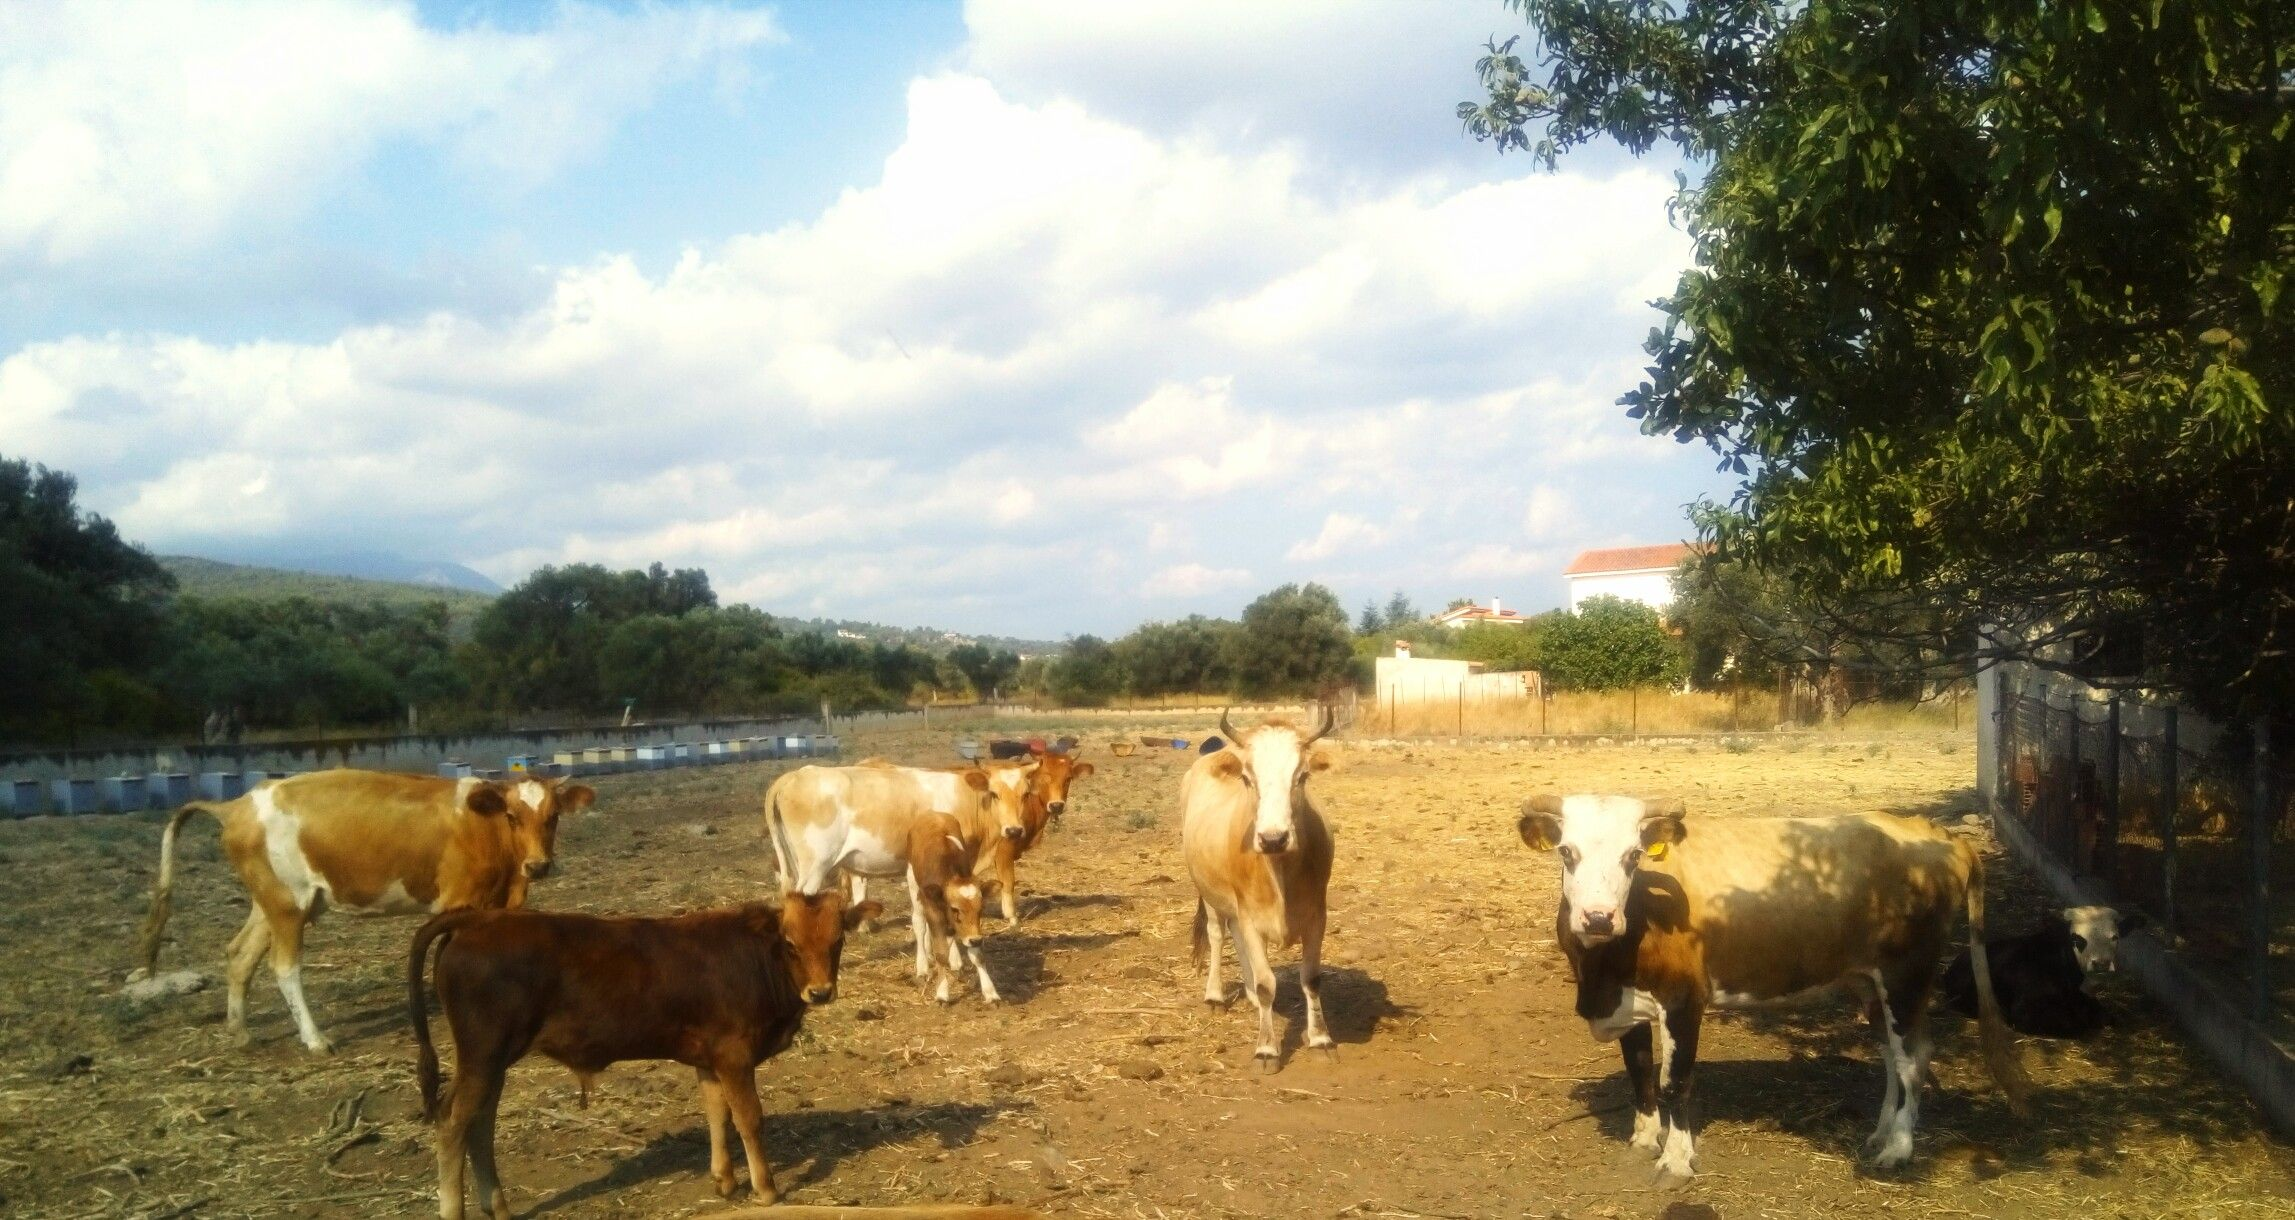 Cows in farm background